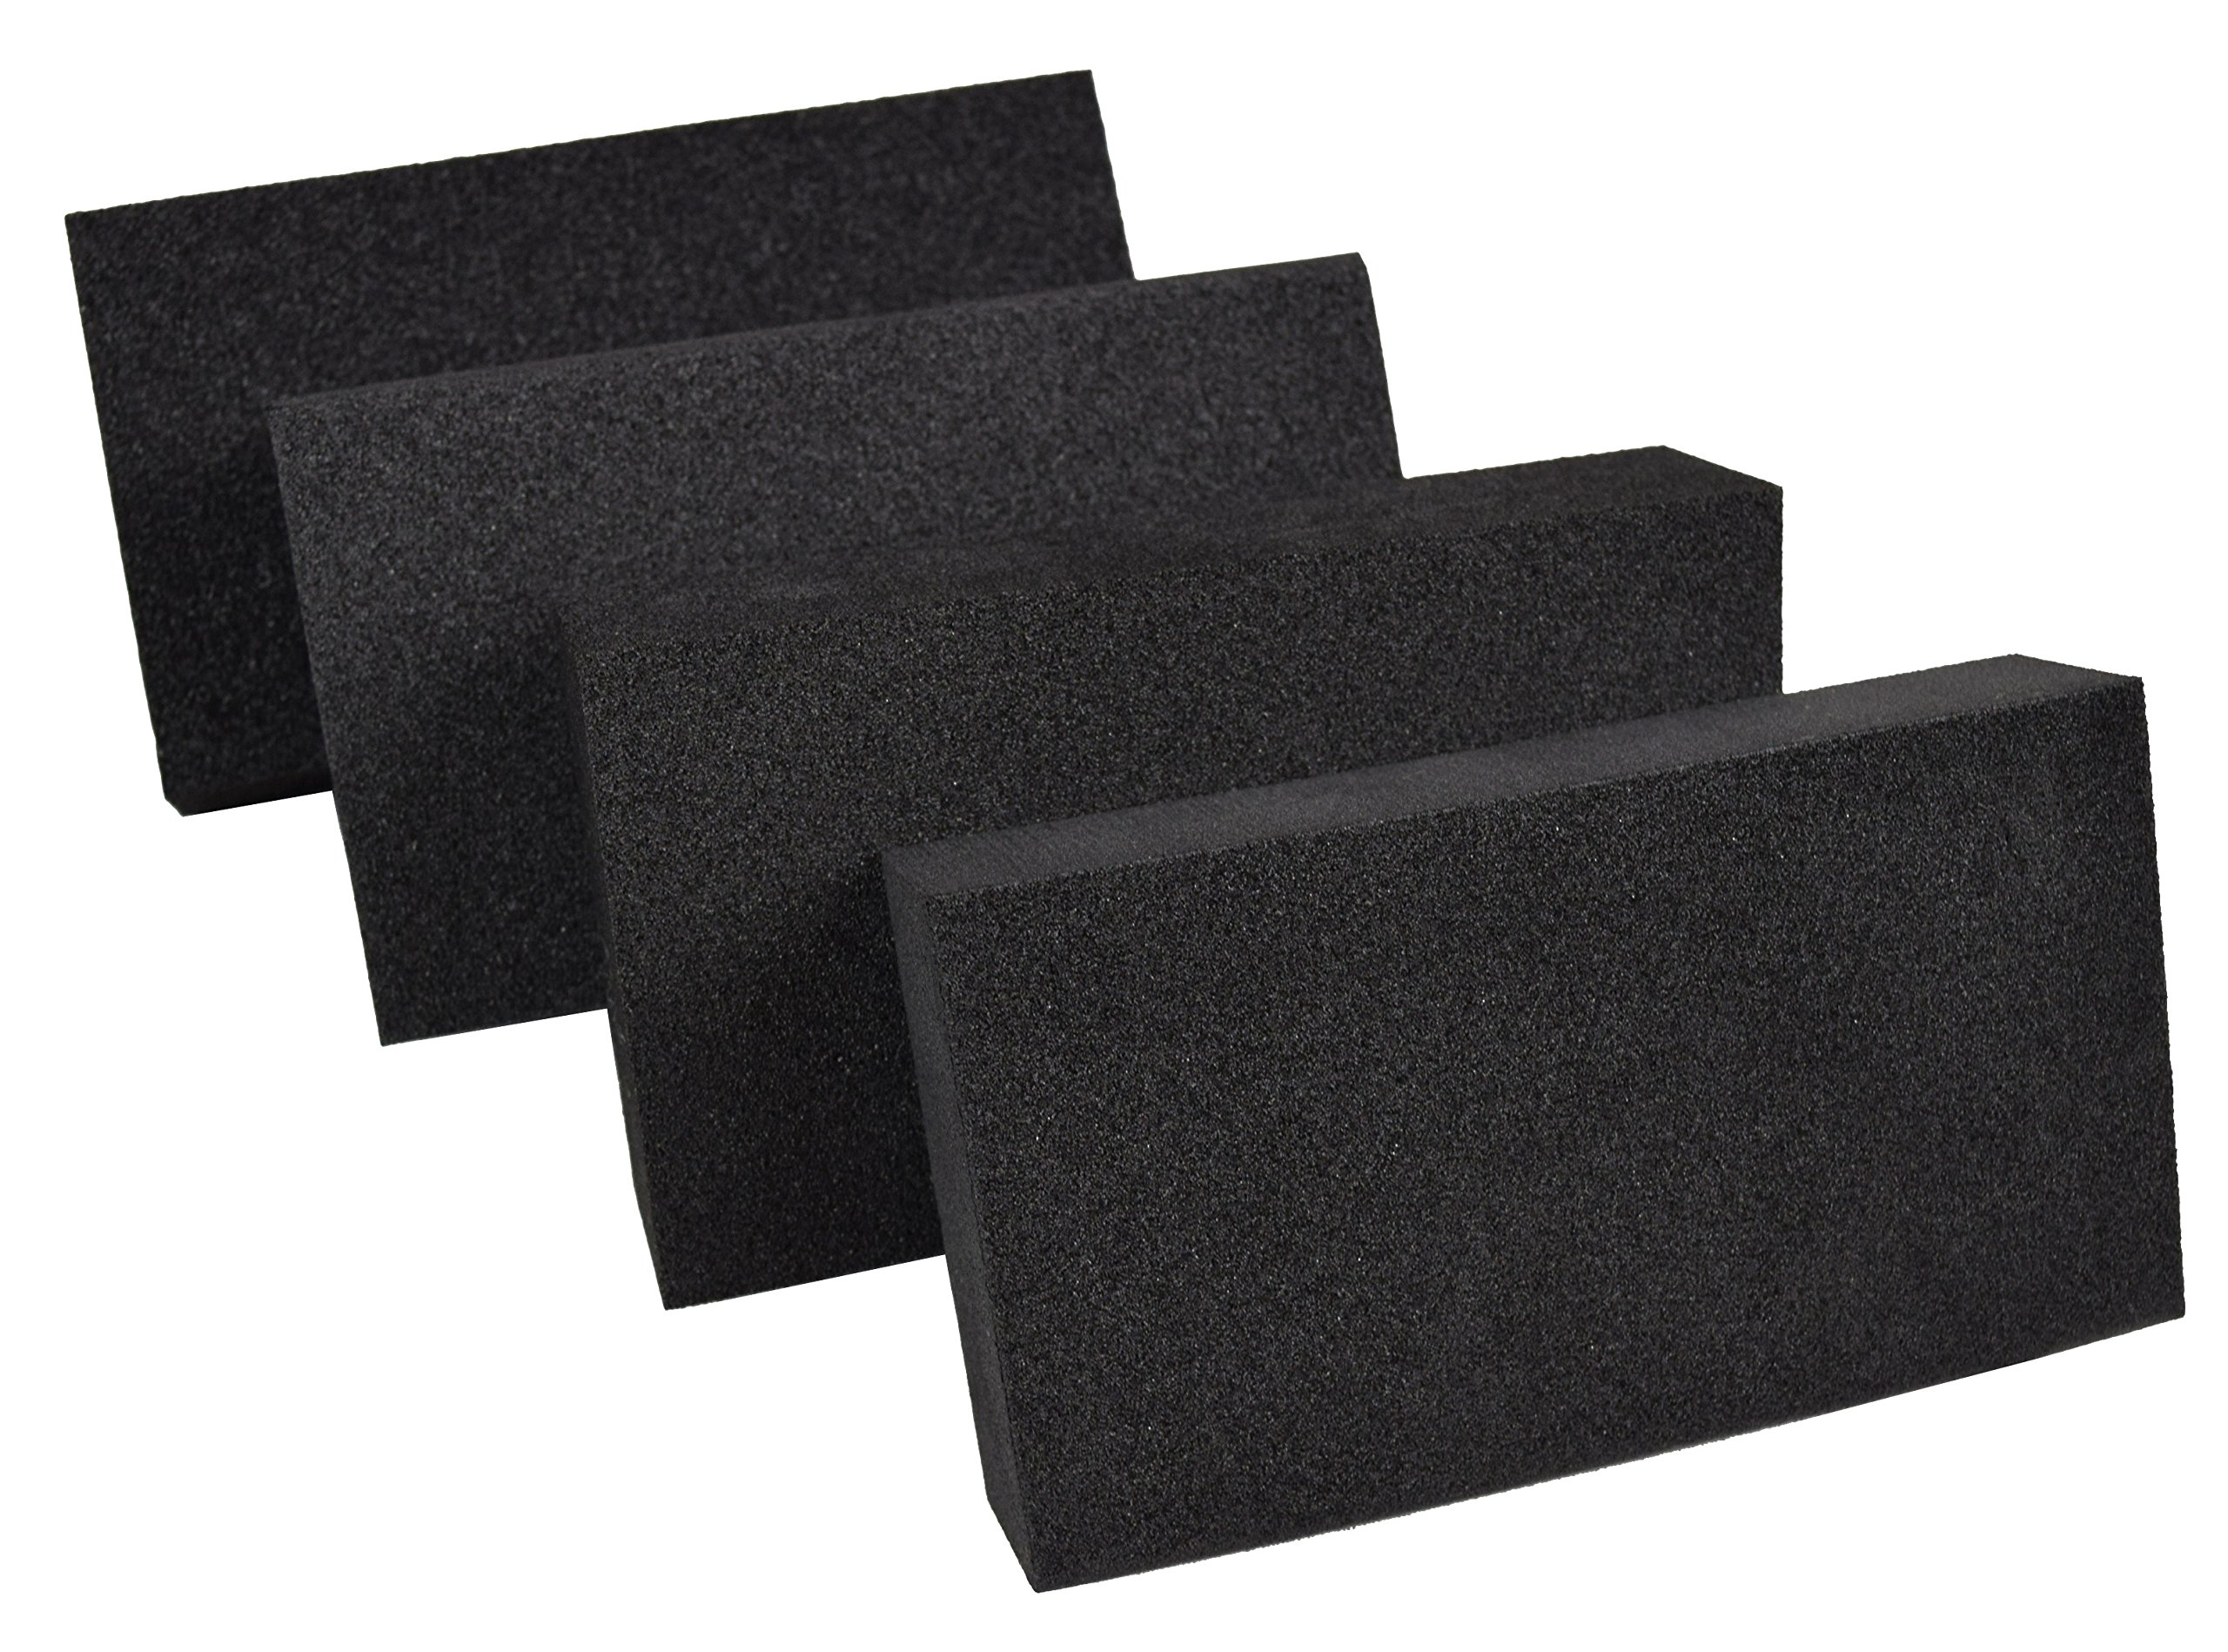 XCEL Power-Block Black Scruff Pad Sanding Block, Pack of 4, Size 5.5'' x 3'' x 1'' by XCEL